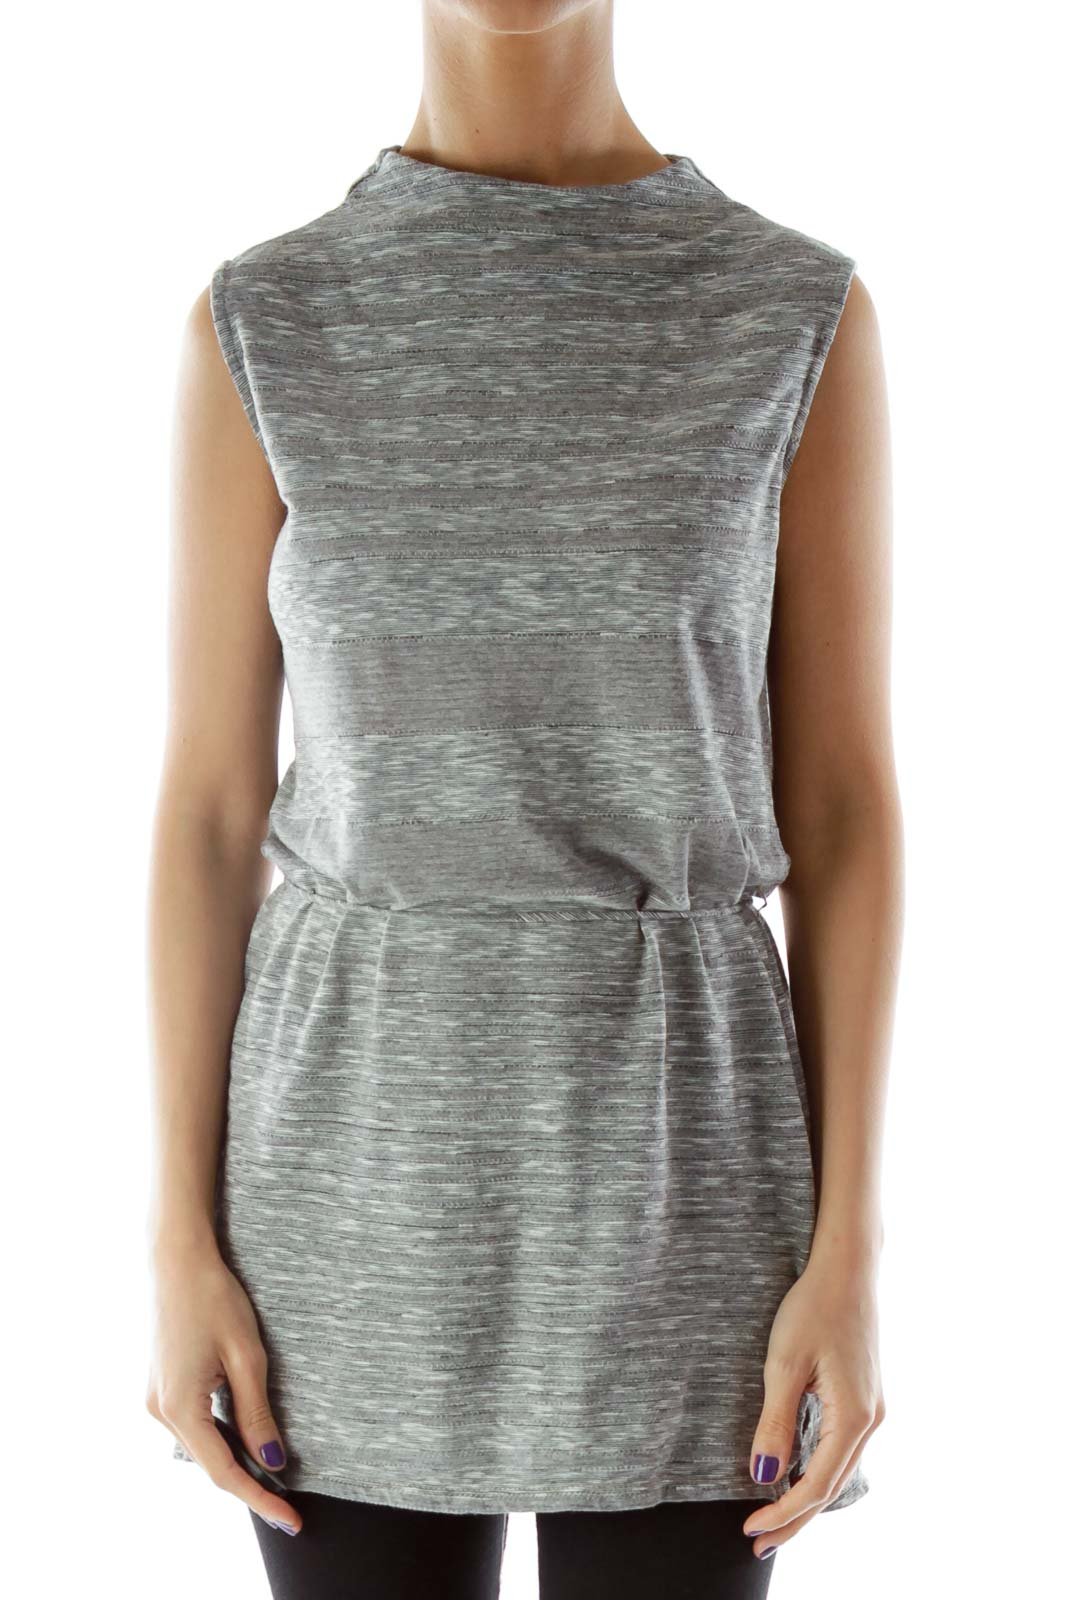 Gray Slitted Sleeveless Blouse with High Neck